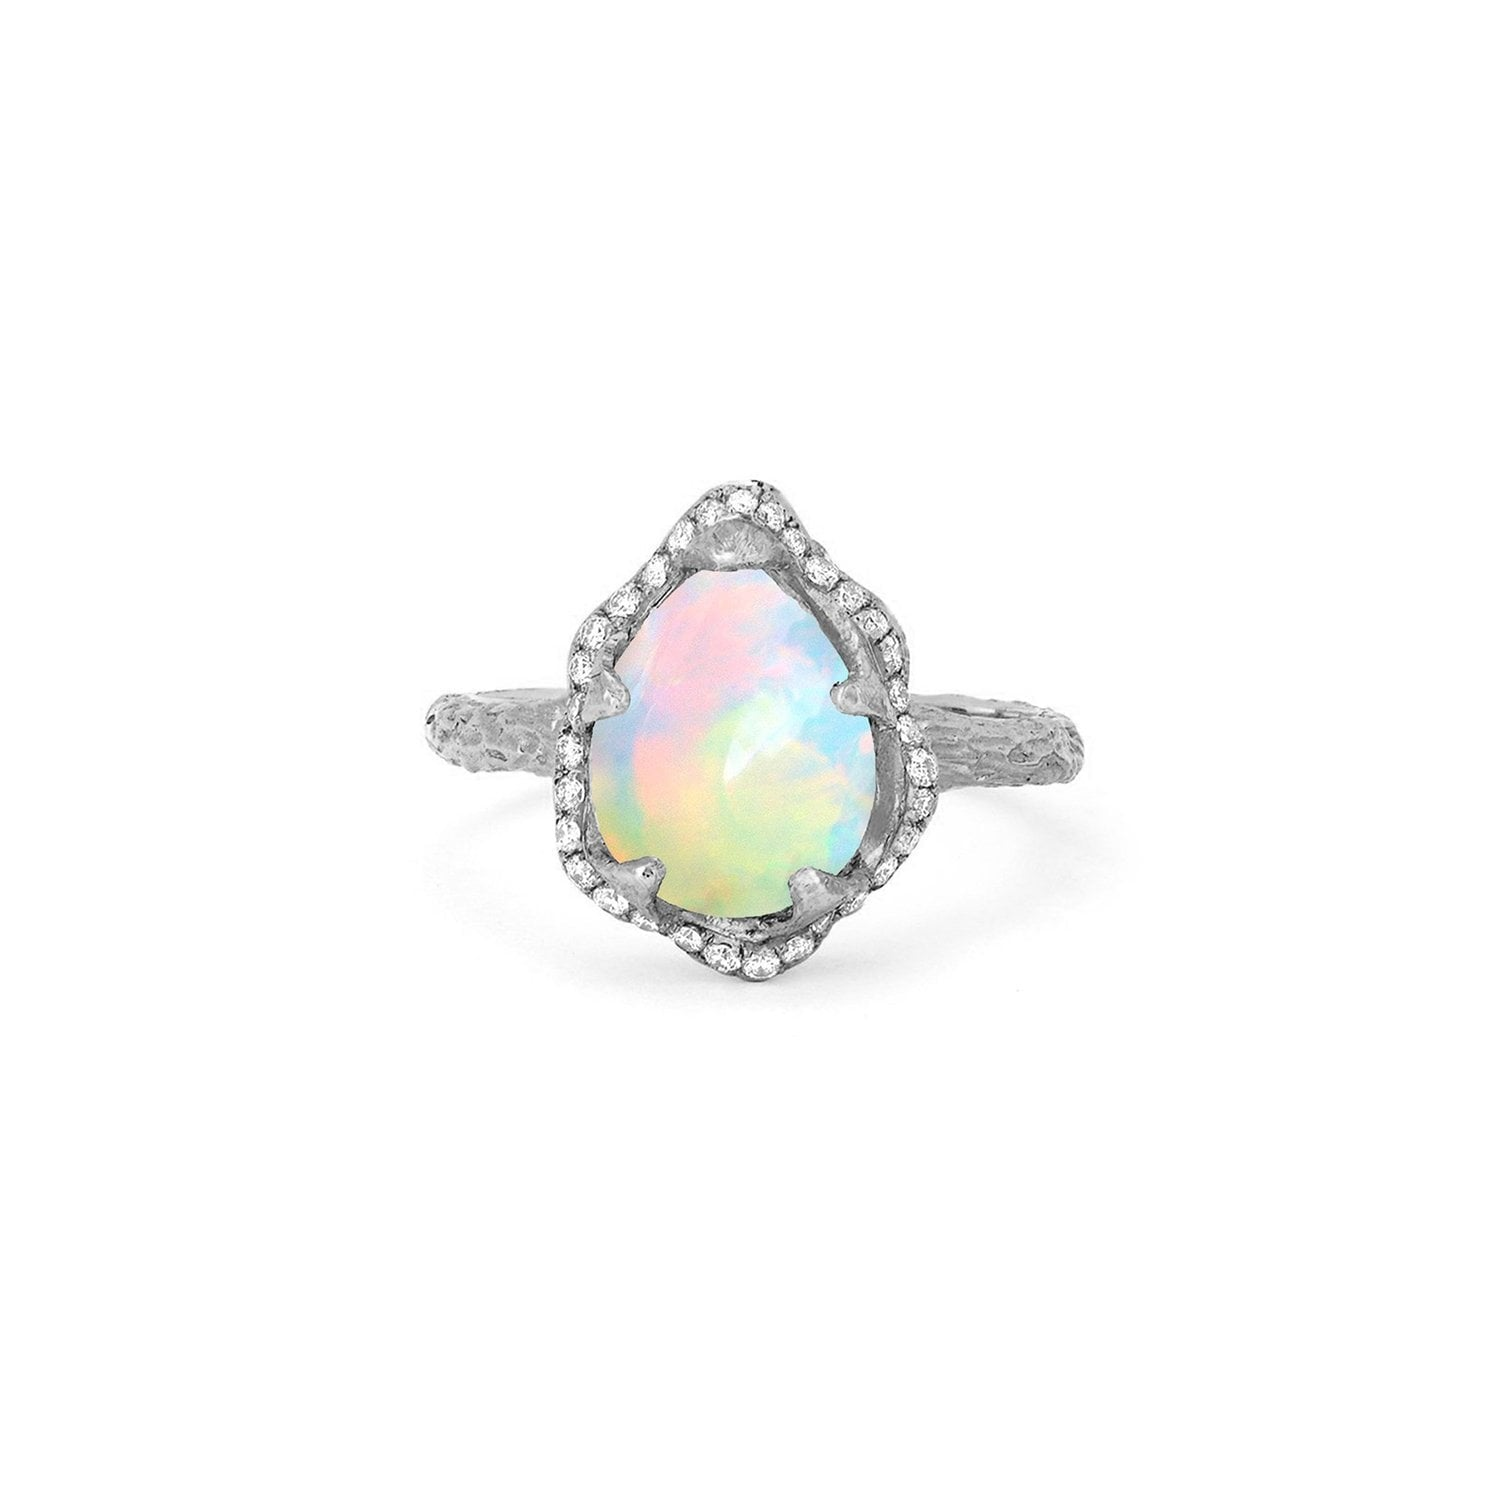 Baby Queen Water Drop White Opal Ring with Full Pavé Diamond Halo